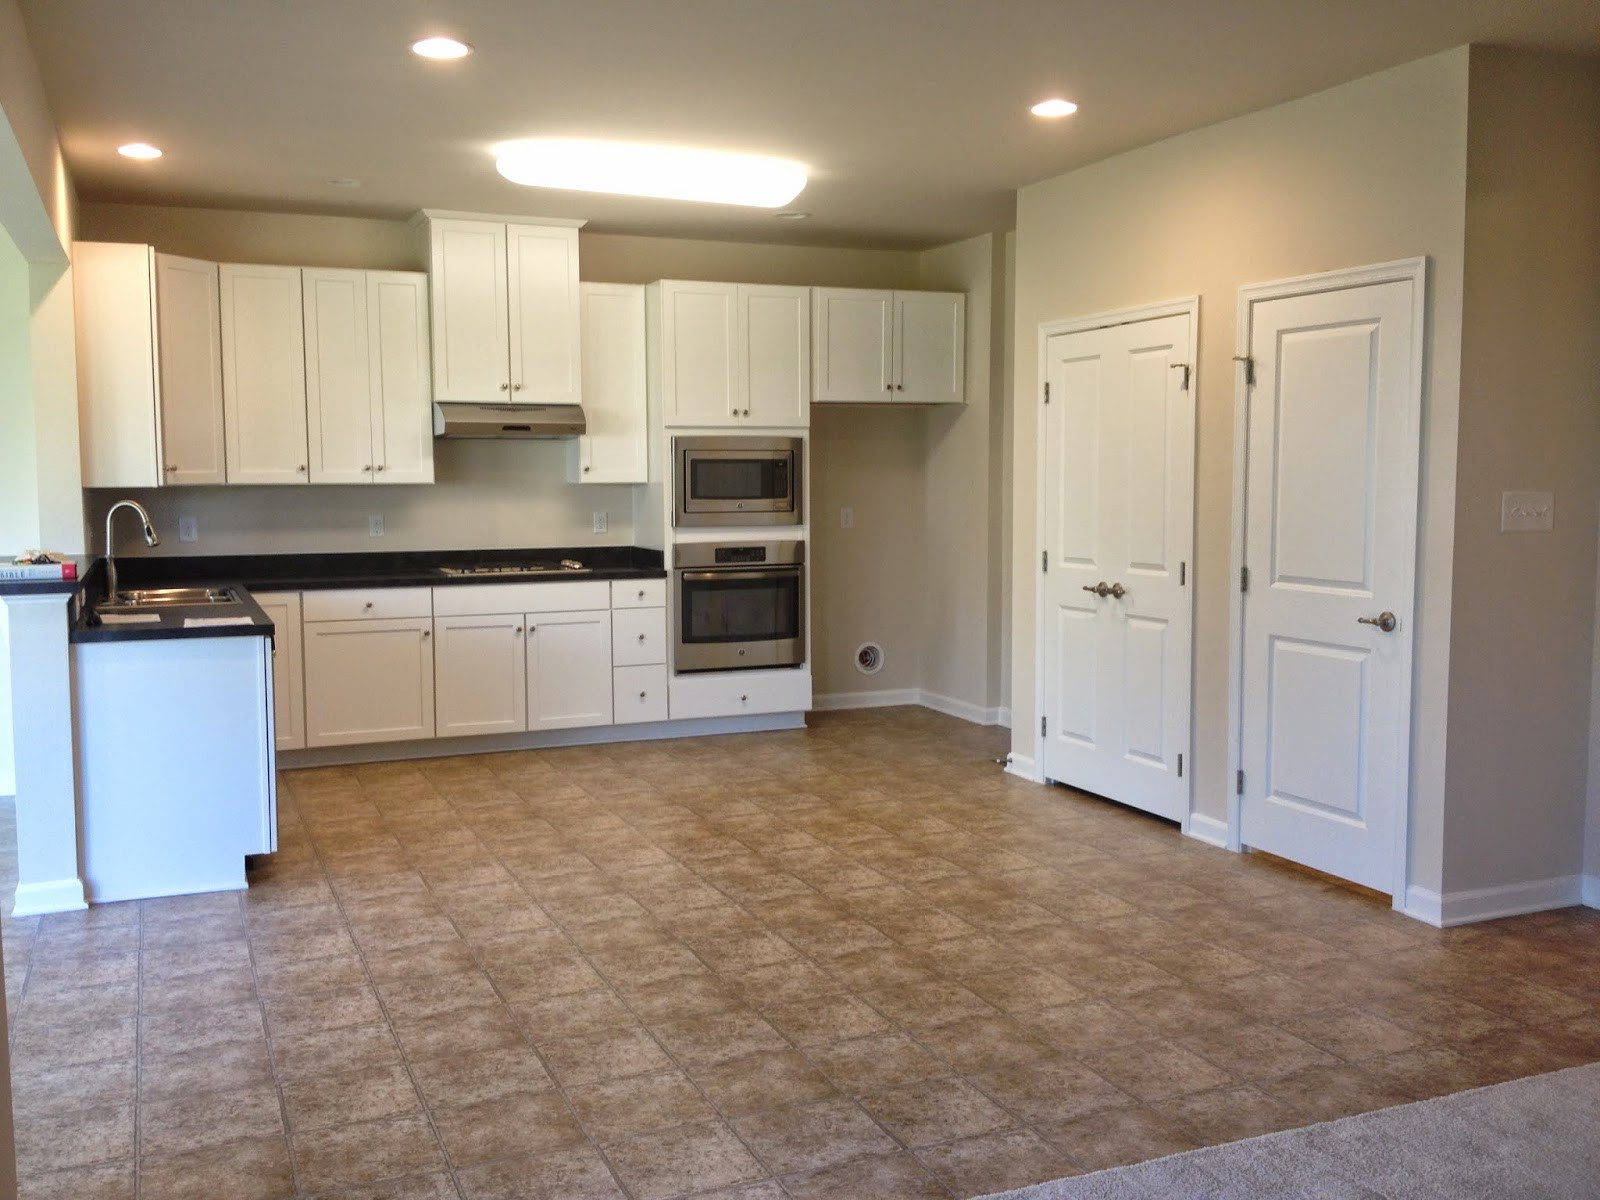 ryan homes hardwood floor options of road to palermo within kitchen showing pantry left and door to basement